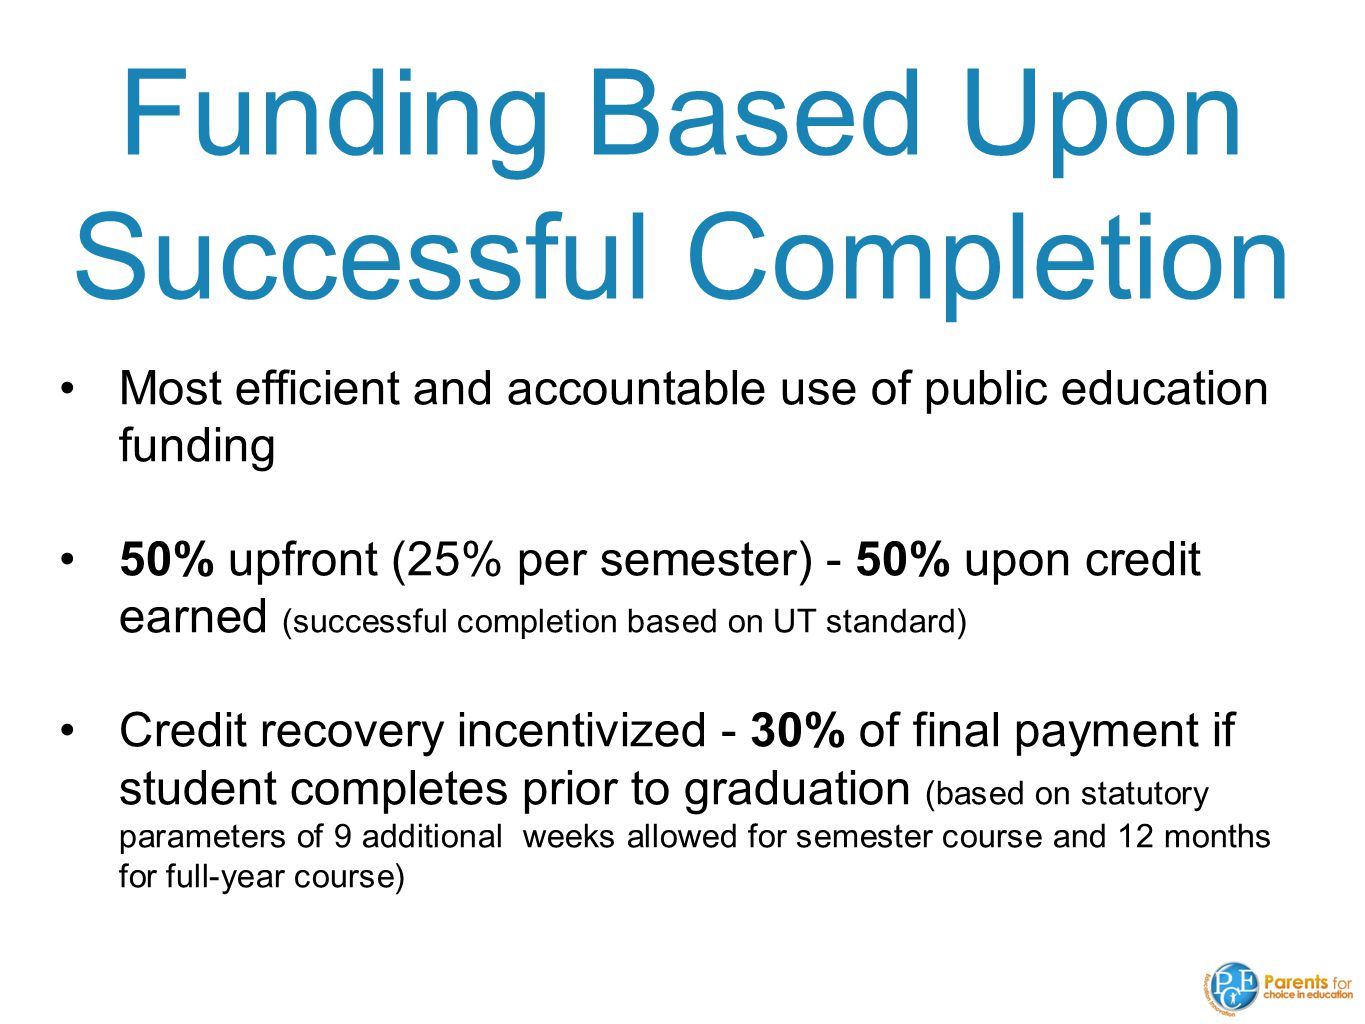 Funding Based Upon Successful Completion Most efficient and accountable use of public education funding 50% upfront (25% per semester) - 50% upon credit earned (successful completion based on UT standard) Credit recovery incentivized - 30% of final payment if student completes prior to graduation (based on statutory parameters of 9 additional weeks allowed for semester course and 12 months for full-year course)